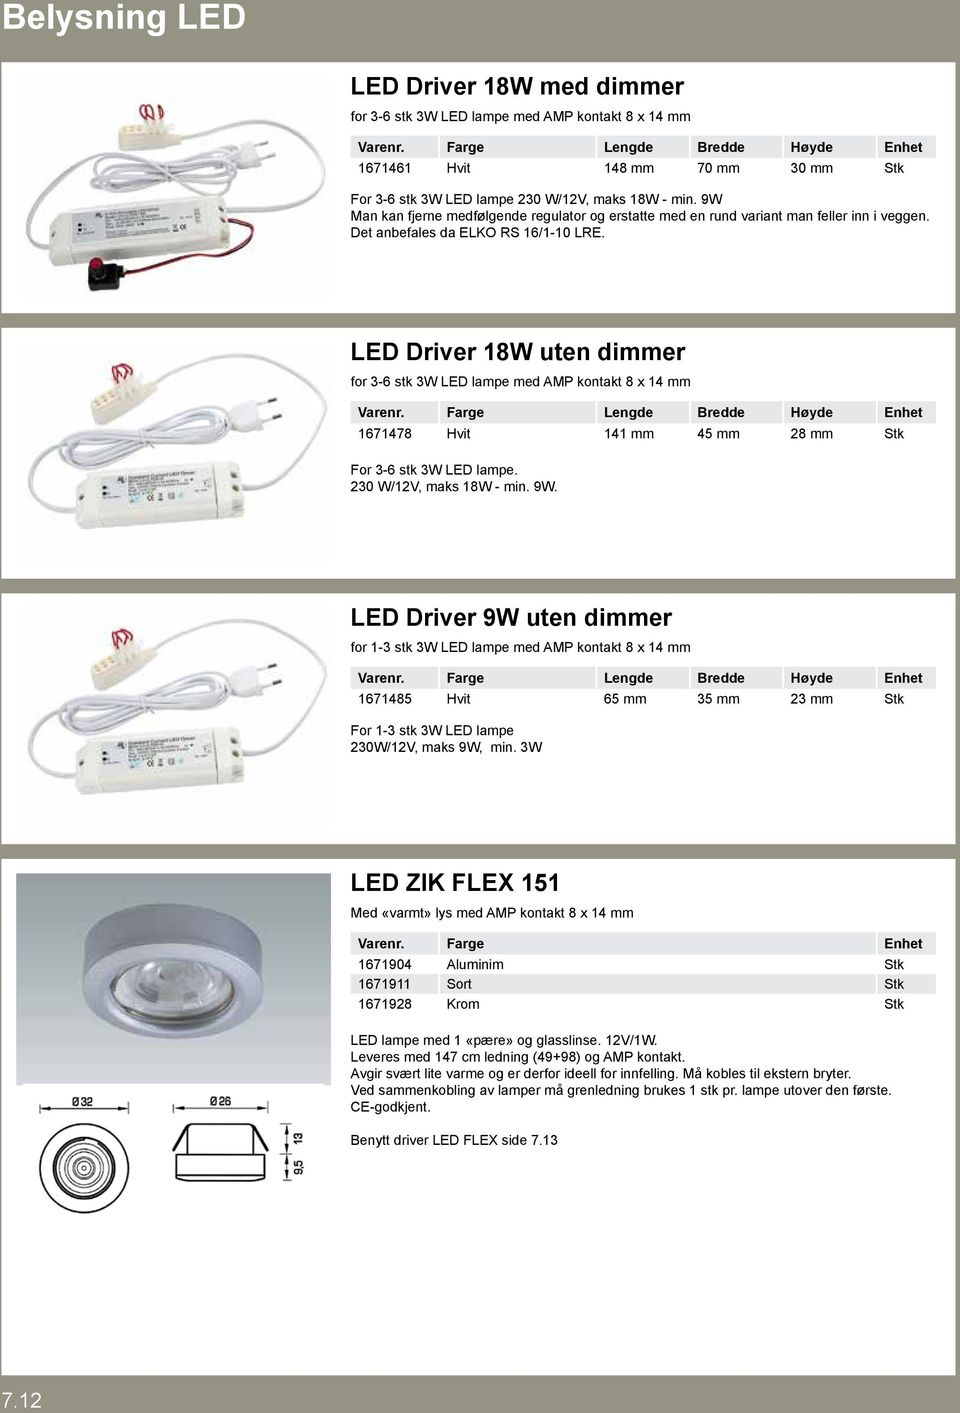 LED Driver 18W uten dimmer for 3-6 stk 3W LED lampe med AMP kontakt 8 x 14 mm 1671478 Hvit 141 mm 45 mm 28 mm Stk For 3-6 stk 3W LED lampe. 230 W/12V, maks 18W - min. 9W.